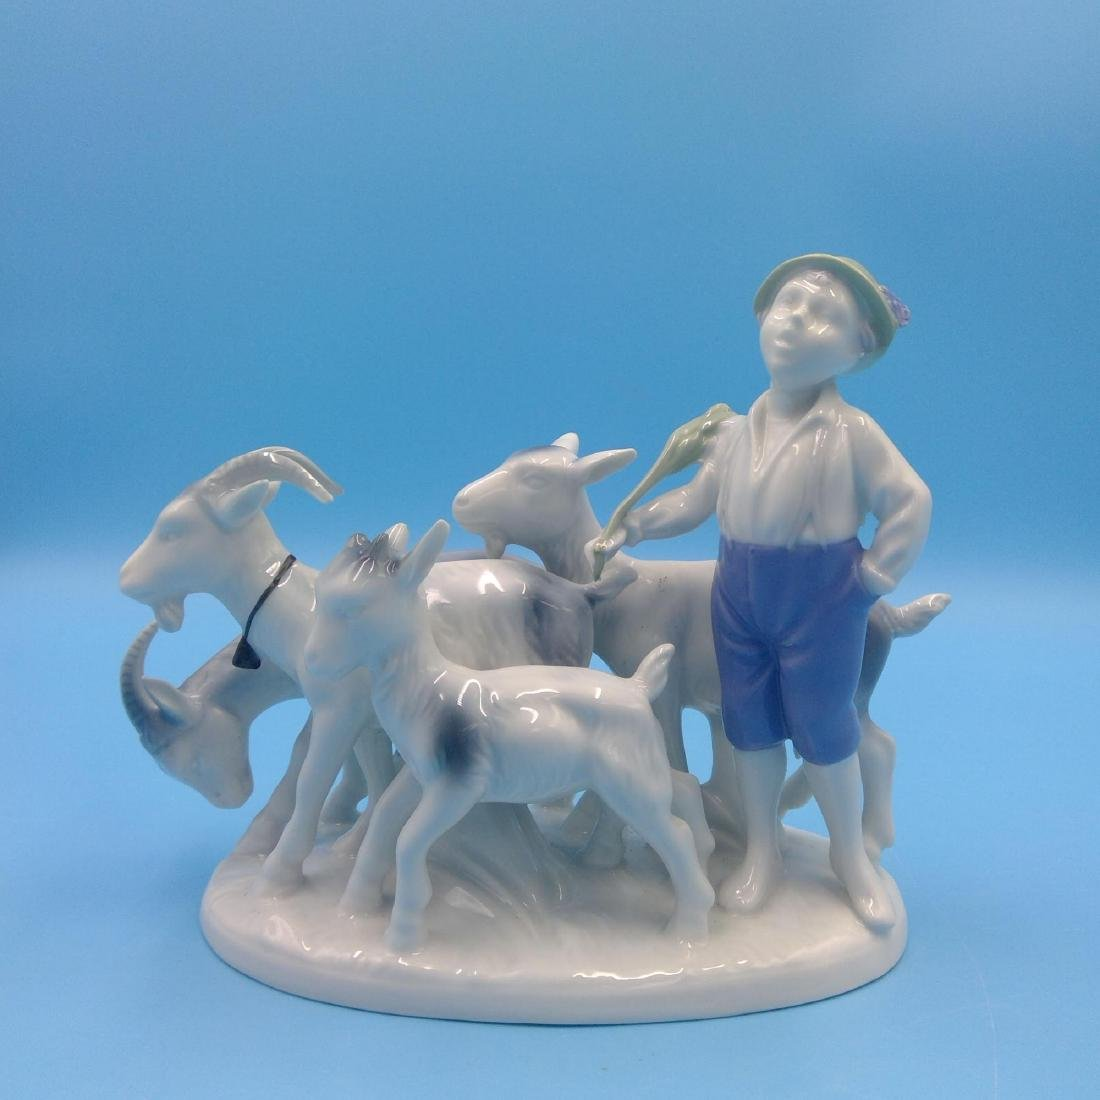 GROUP OF 6 GERMAN PORCELAIN FIGURINES - 3